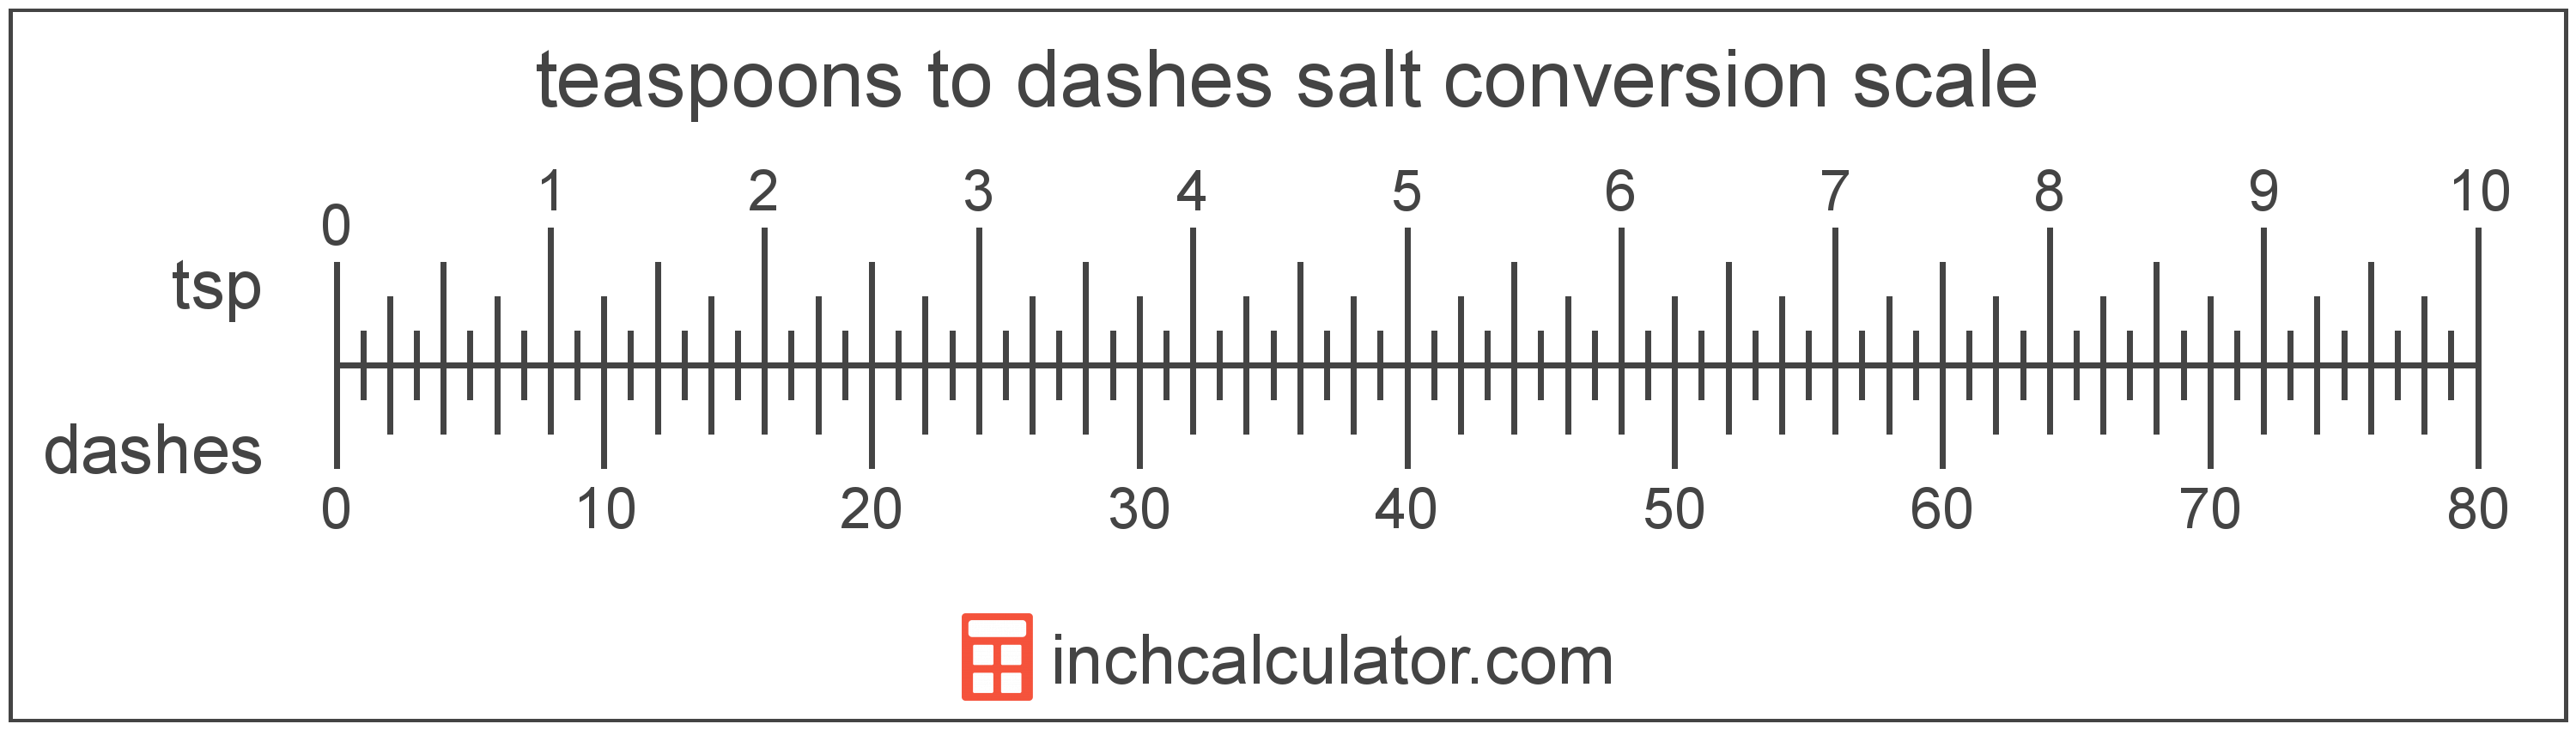 conversion scale showing dashes and equivalent teaspoons salt volume values